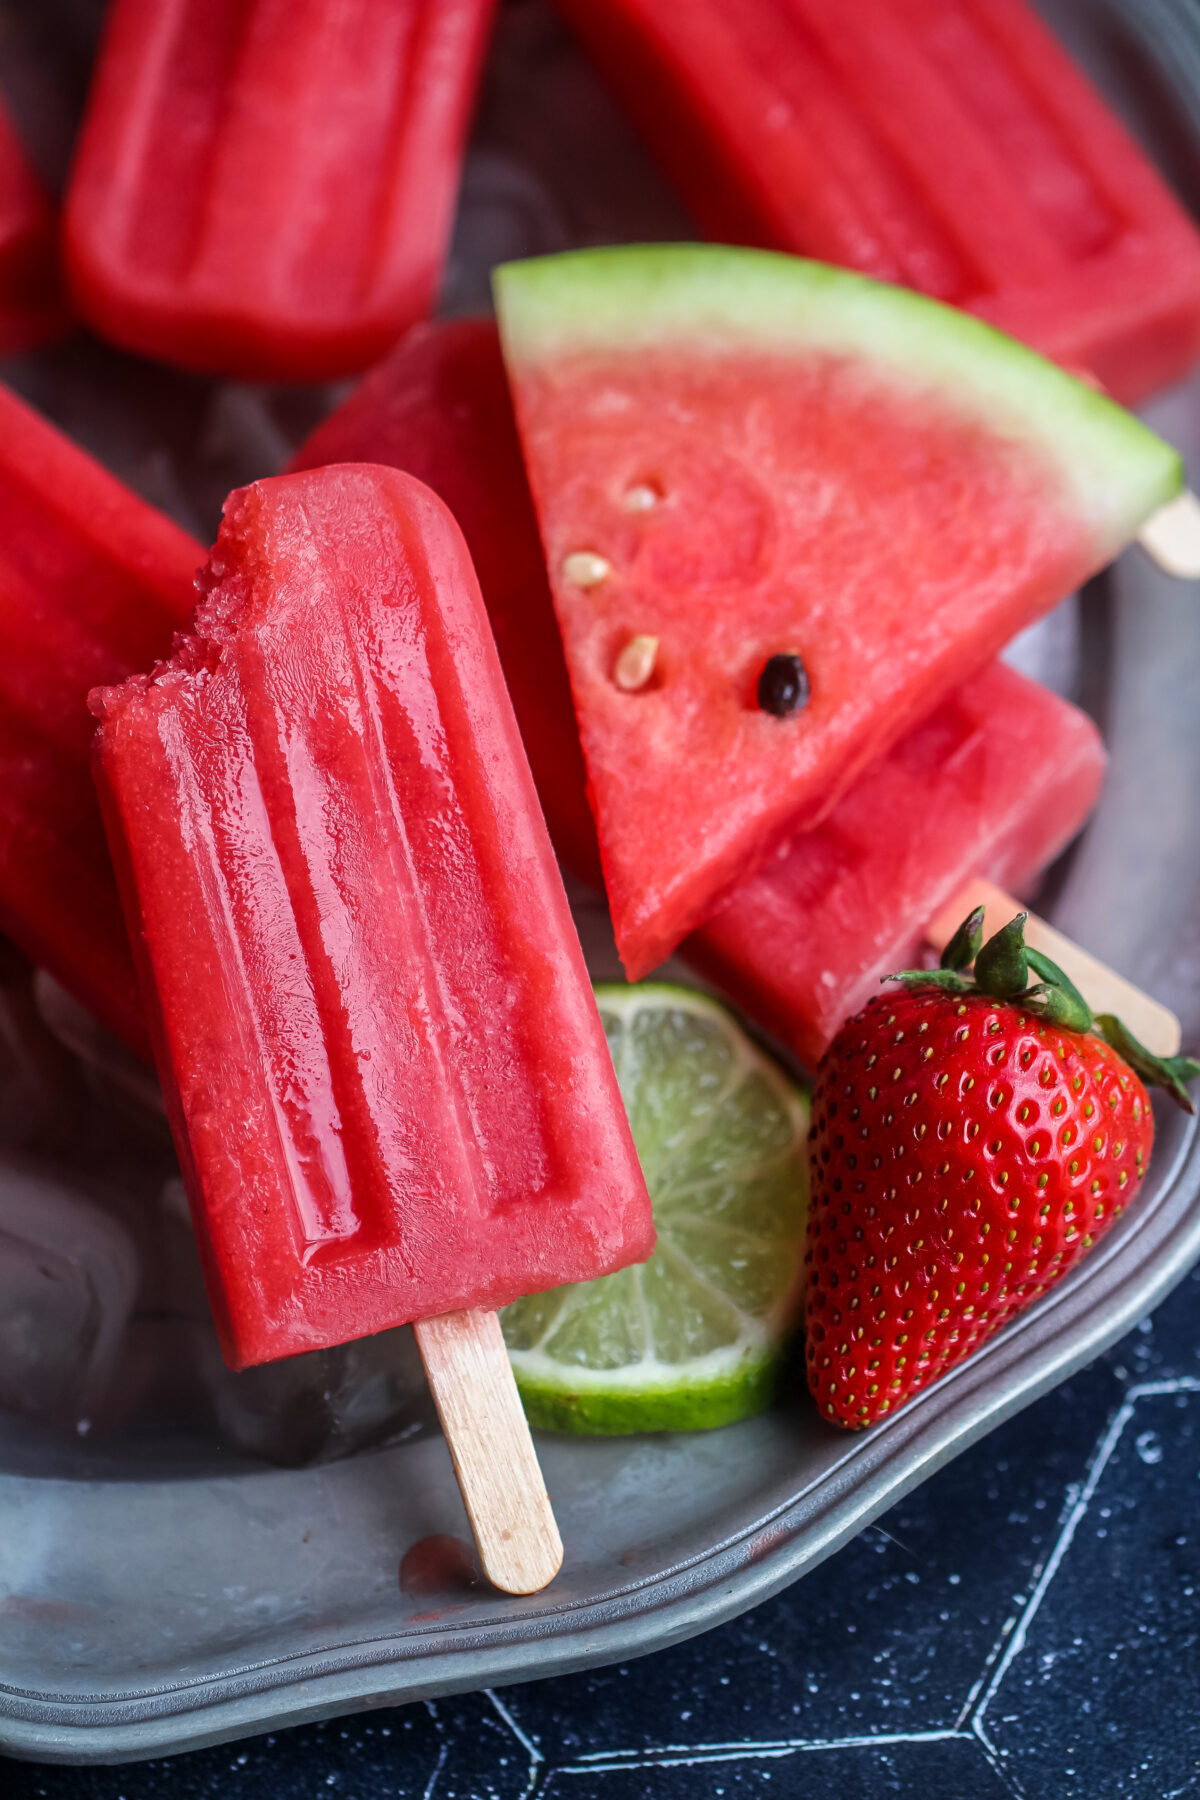 A simple recipe for strawberry watermelon ice pops for when you want a refreshing treat to keep your family cool on hot summer days.